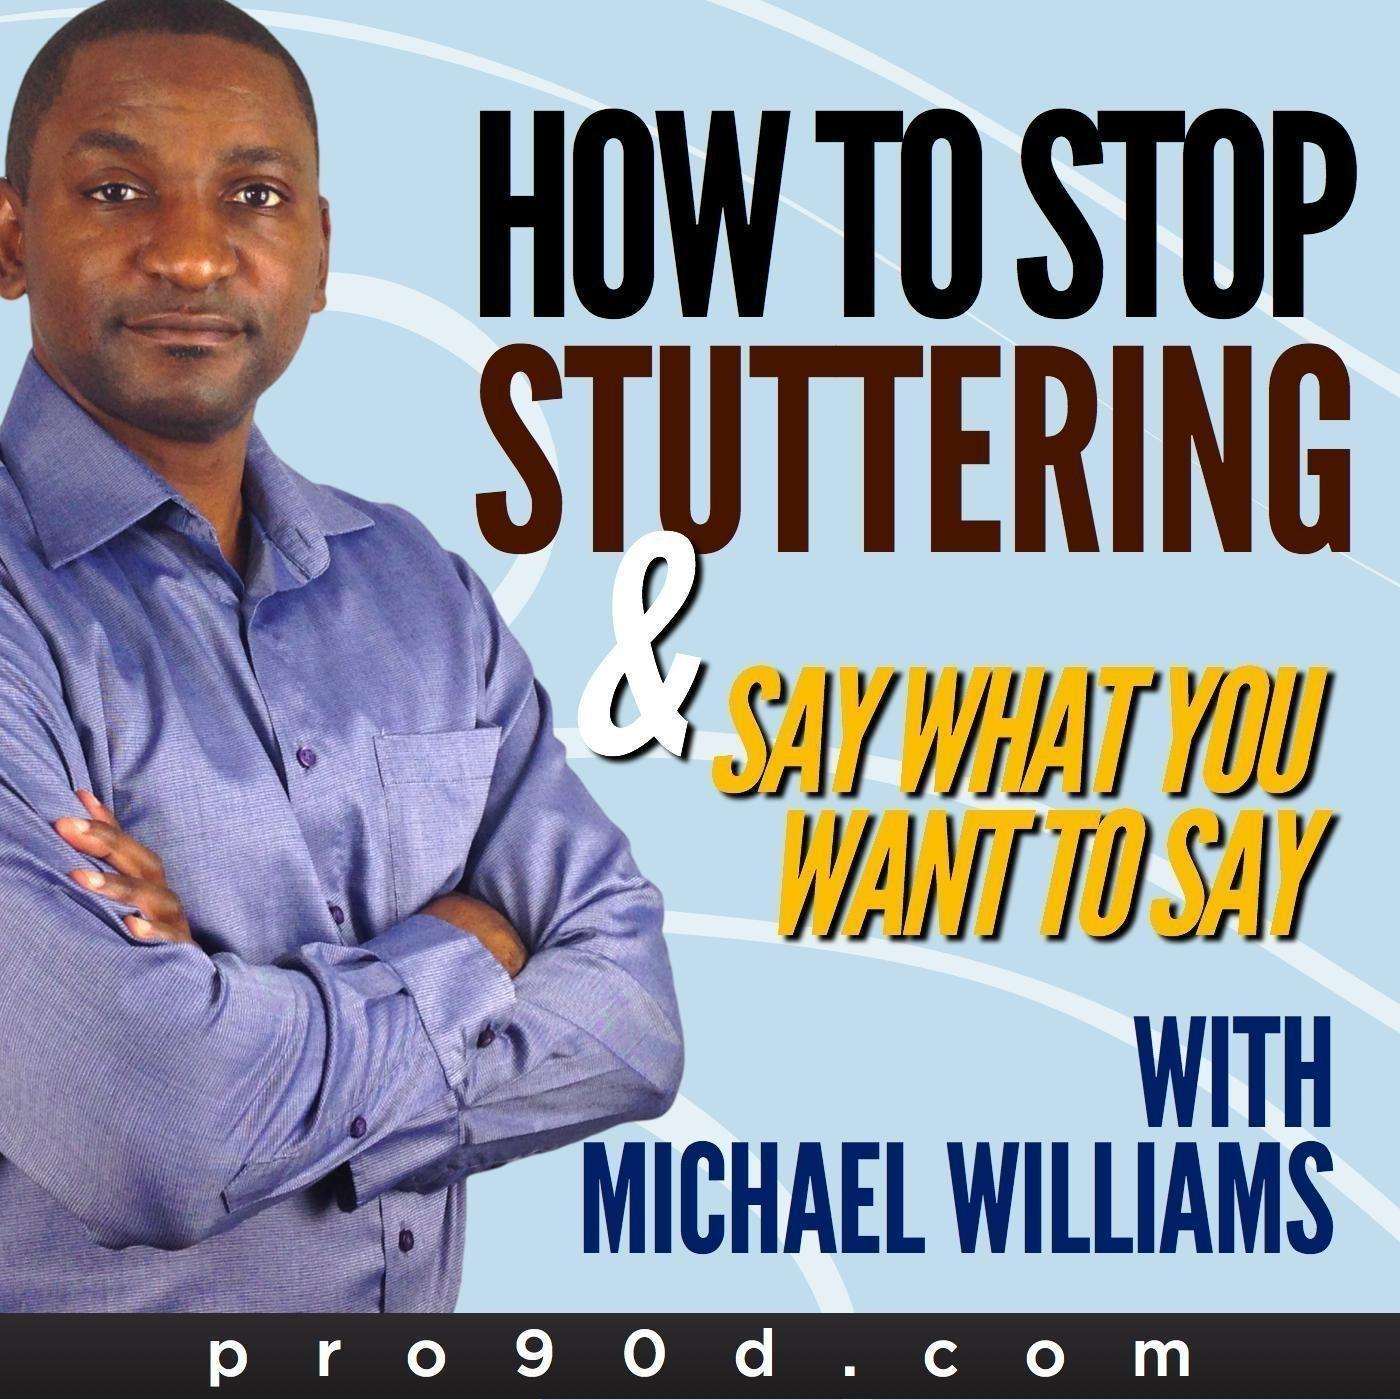 Learn How to Stop Stuttering and Say What You Want with Michael Williams